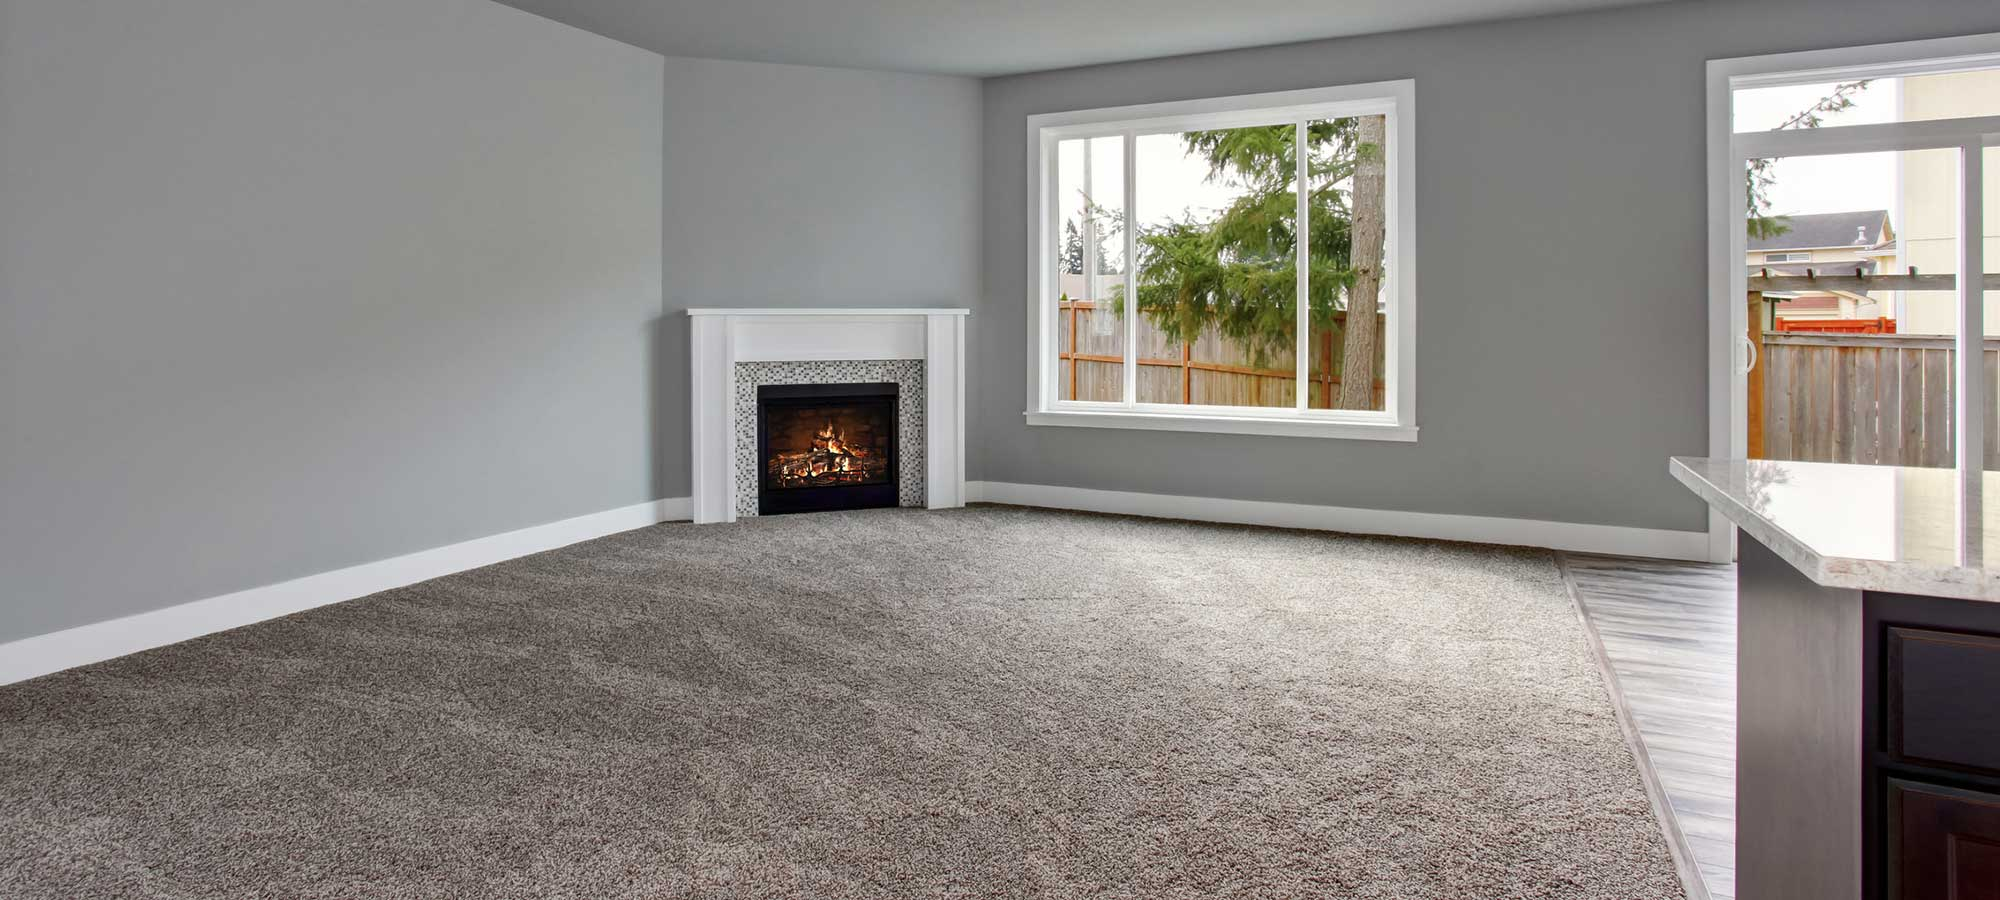 Hundreds of colors and styles of Carpet on sale now; serving the Portland, Oregon Metro area.